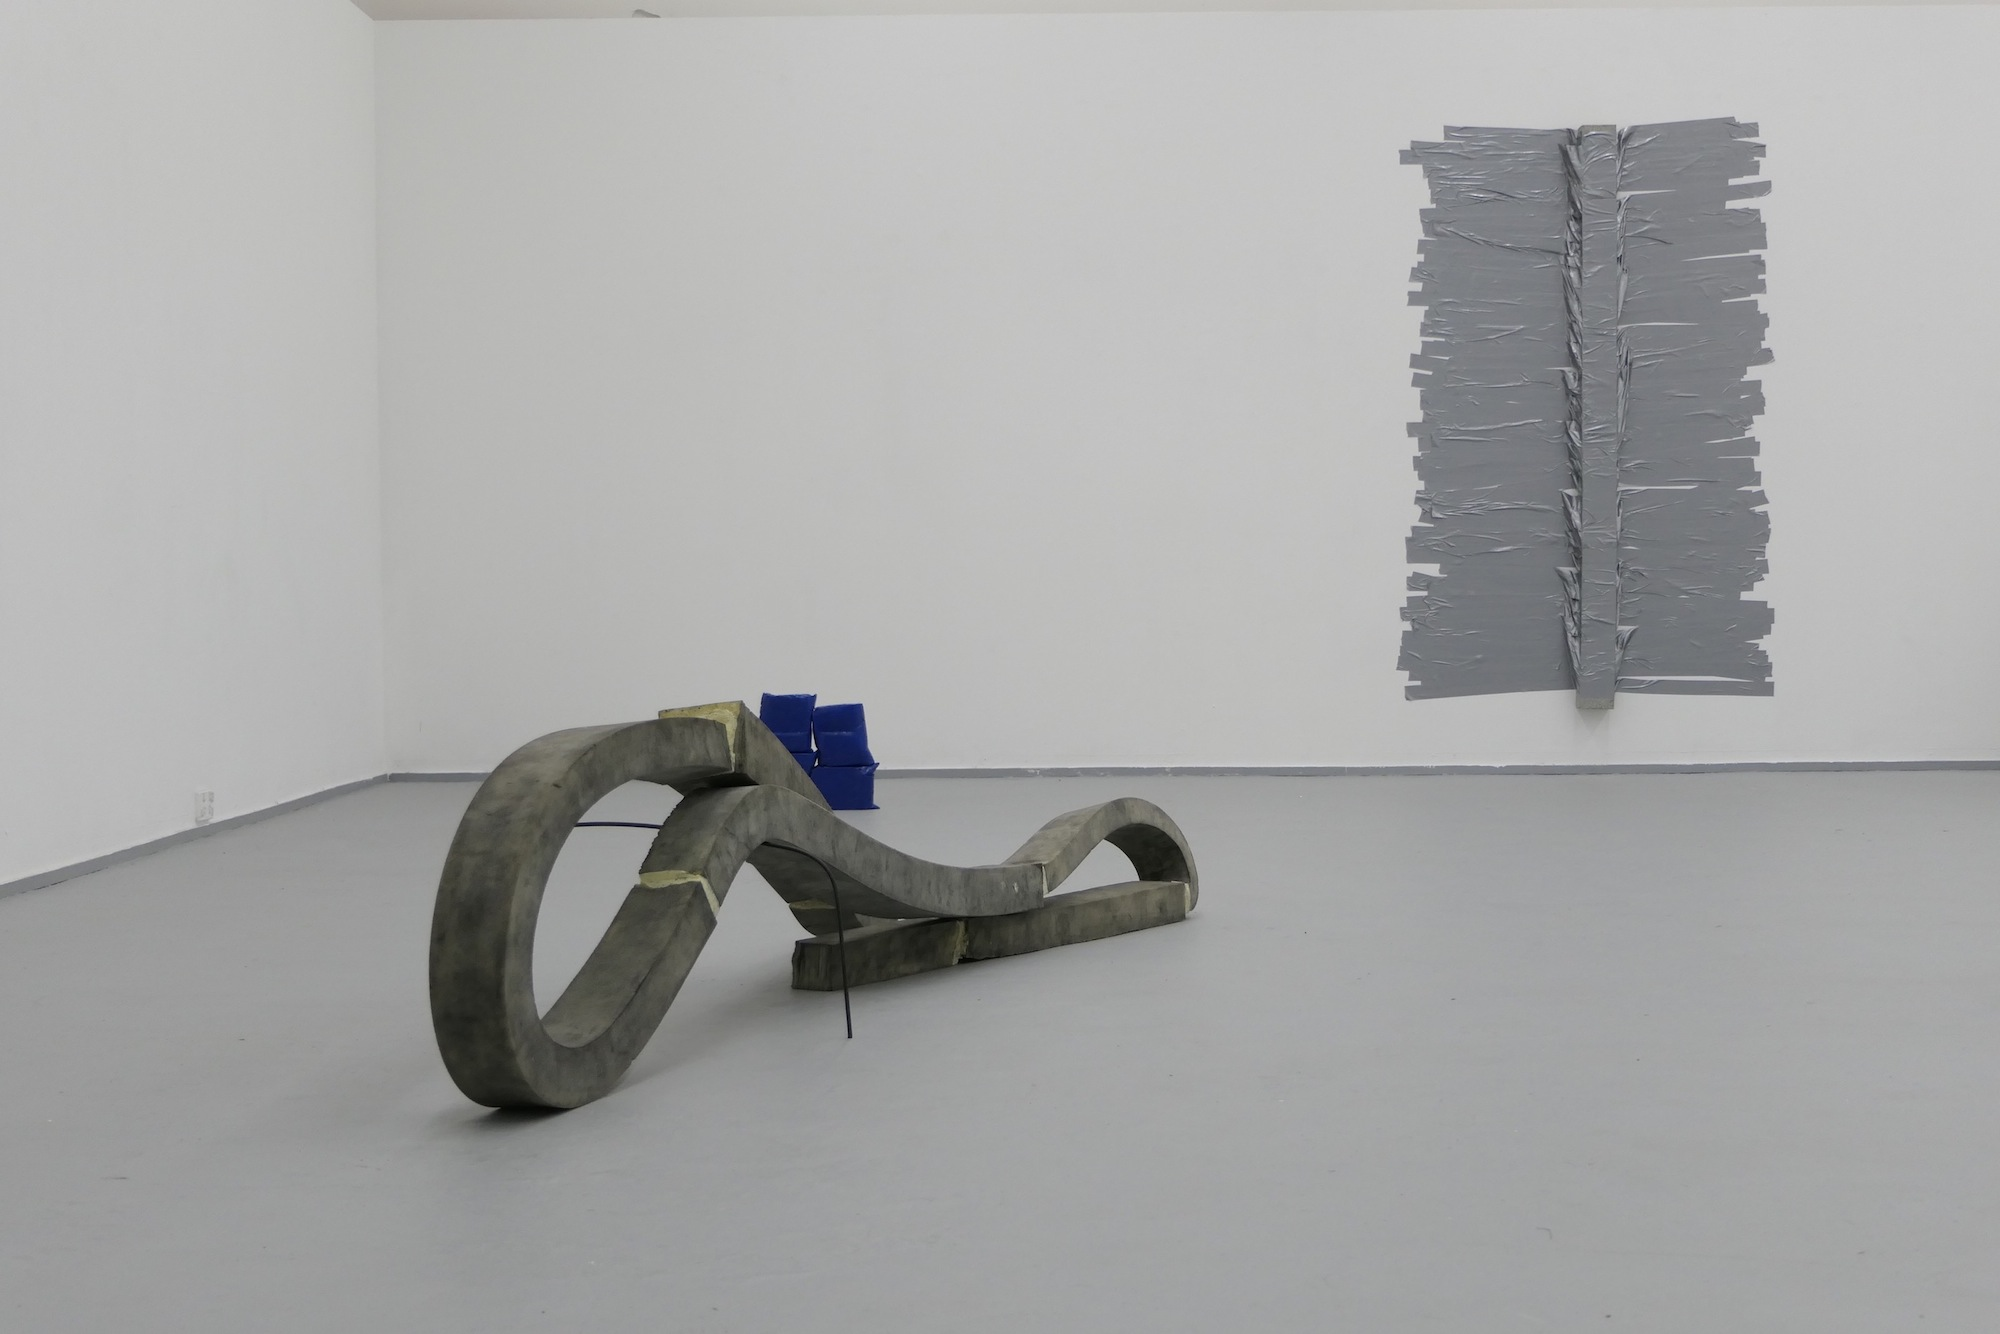 Isabel Buck,  Close Encounters,  2018, concrete, foam, metal, spray paint, oxide, found objects, packing and duct tape, dimensions variable.